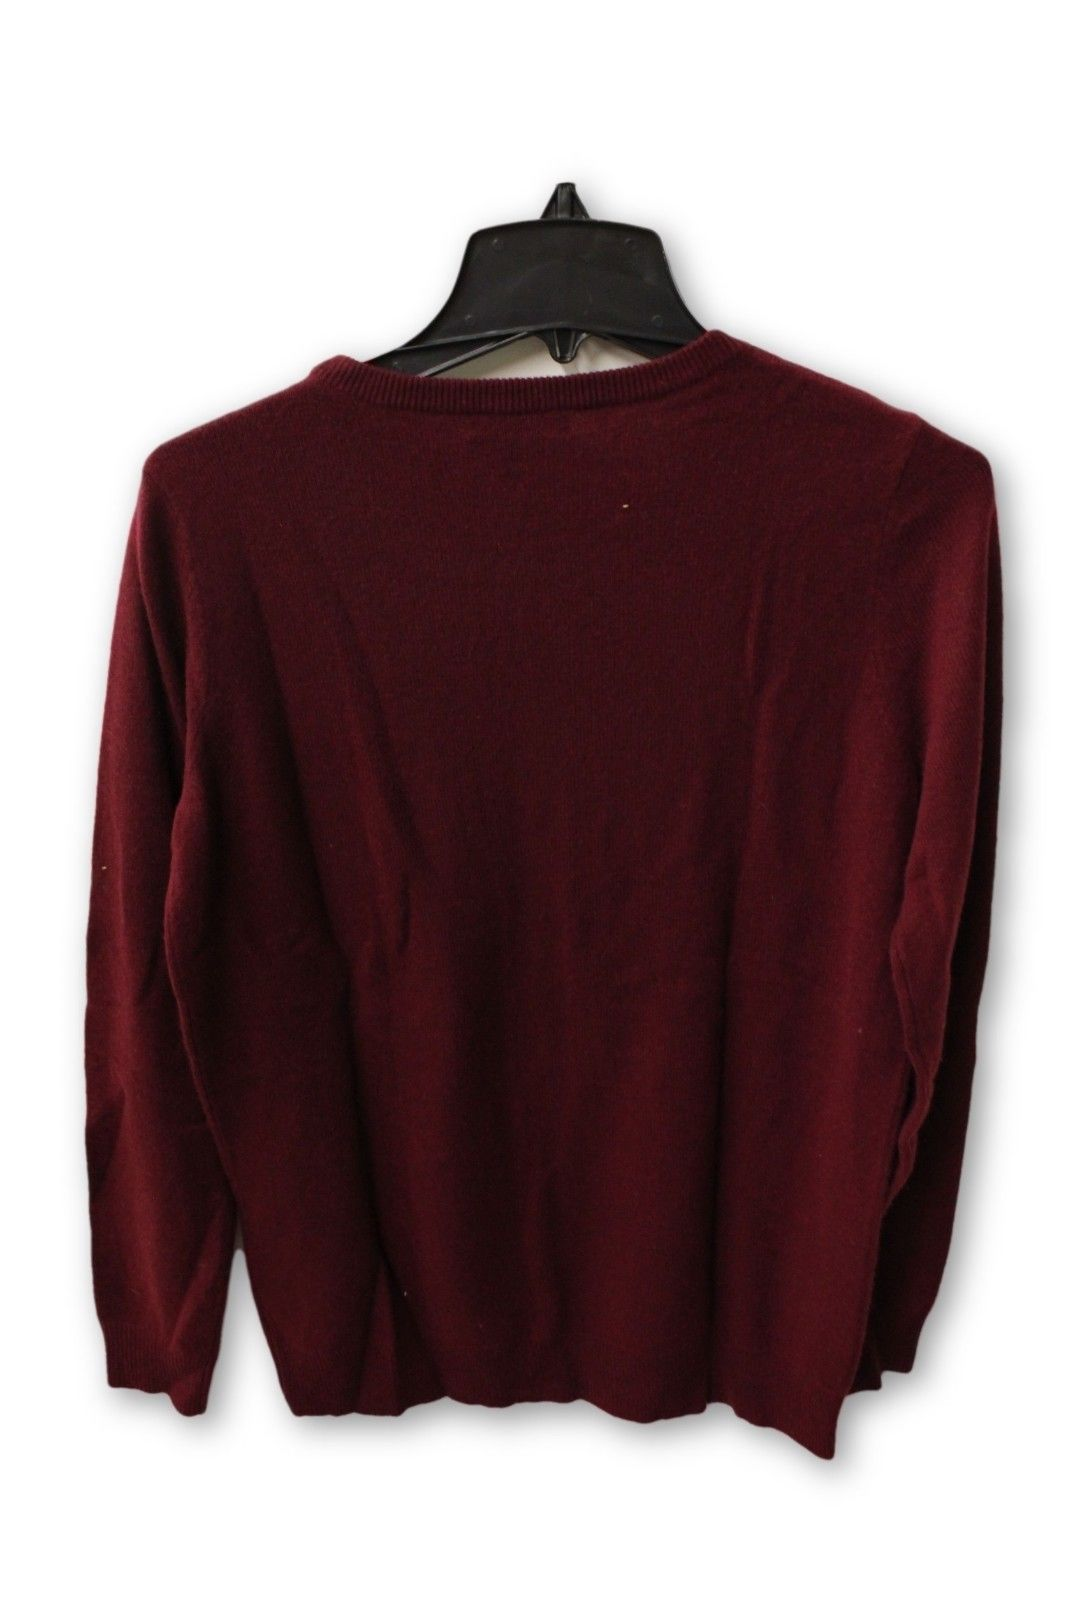 C by Bloomingdale's Women's Cashmere - Maroon Crew Neck Sweater L NWT